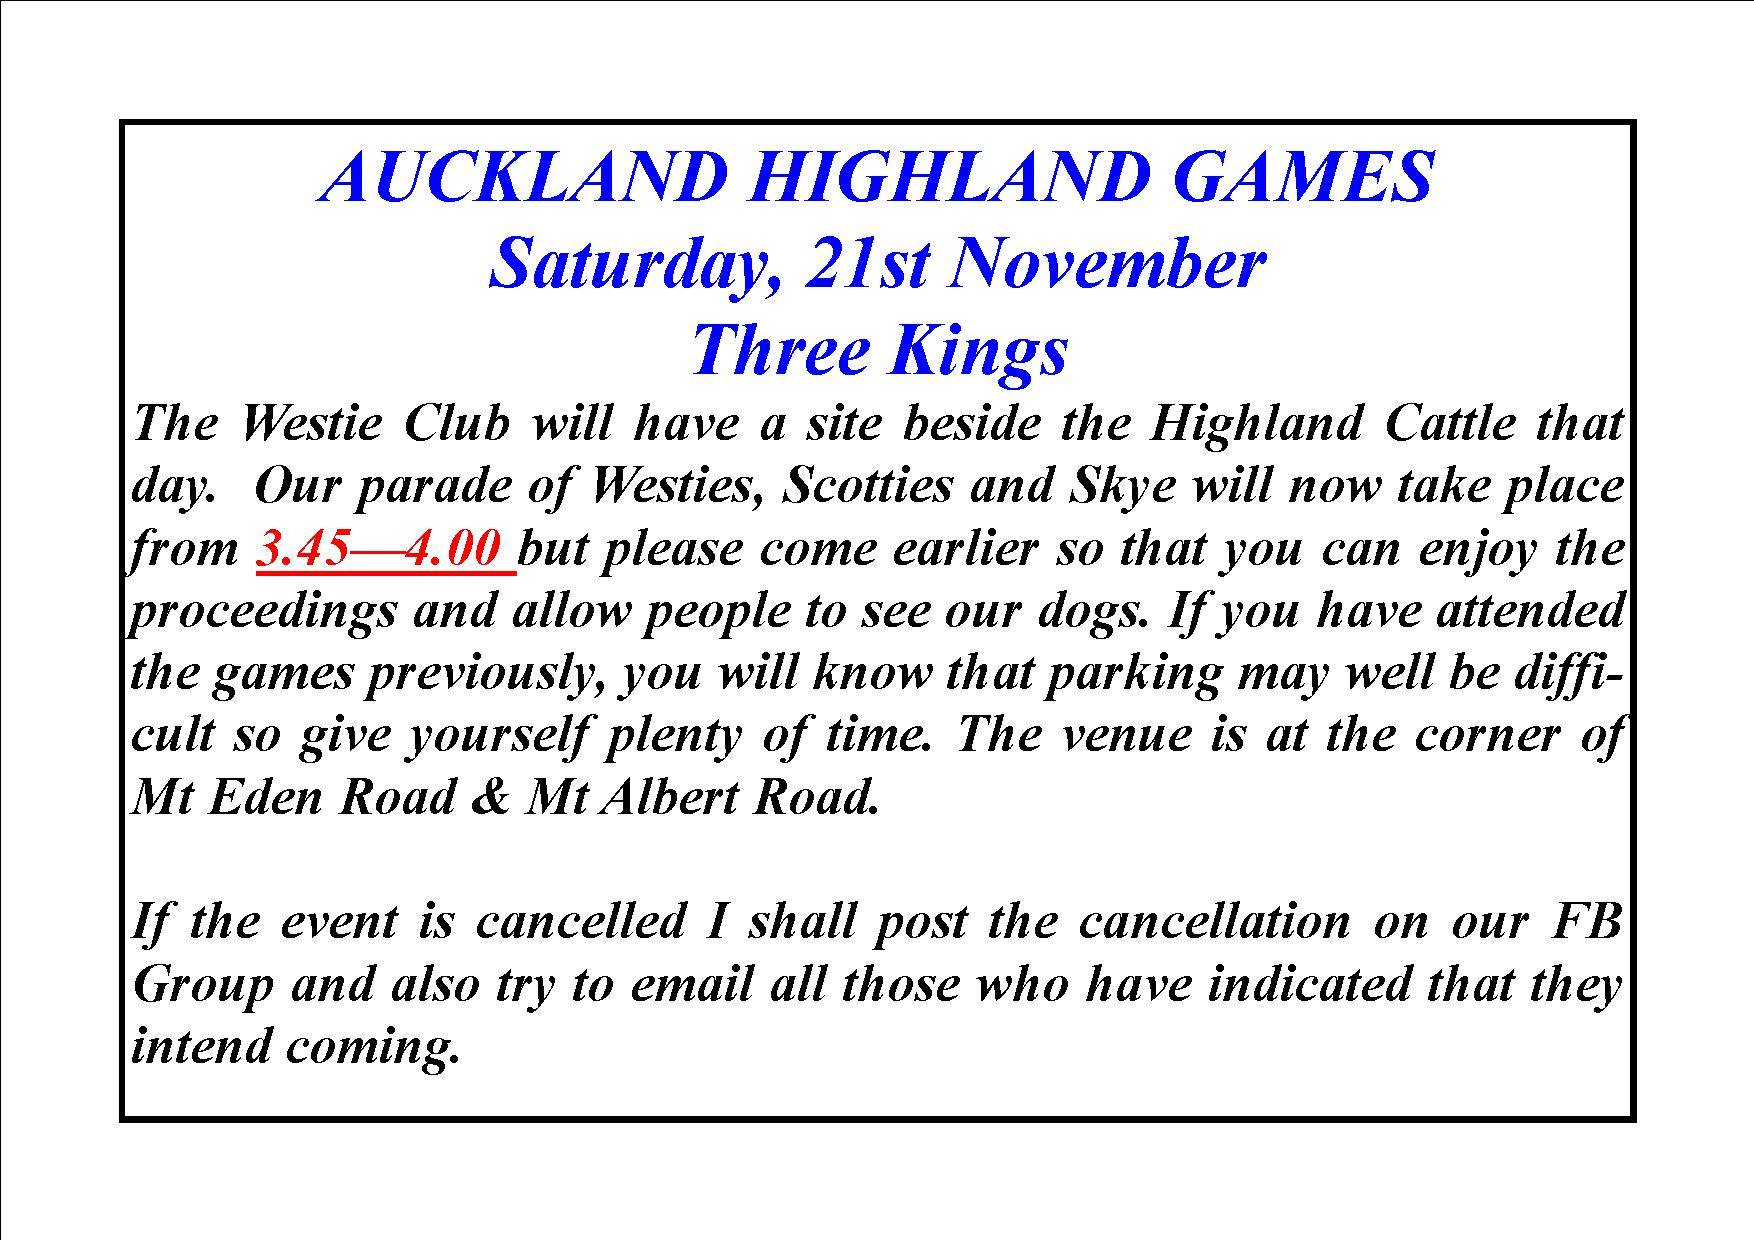 2015 Highland Games Announcement